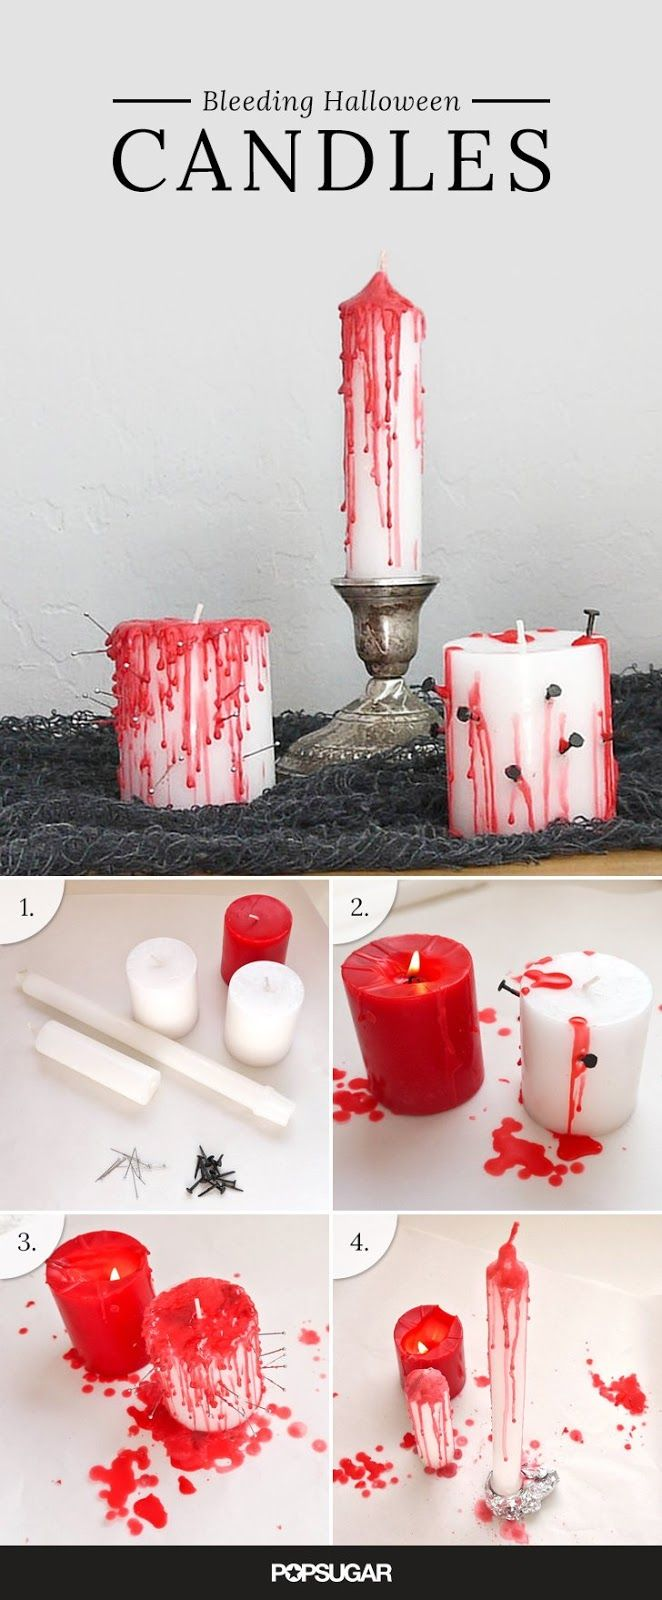 25 Dollar Store Halloween Decor Diy Ideas That Are Spooky 25 Dollar Store Halloween Decor DIY Ideas That Are Spooky Halloween Decorations halloween decorations diy